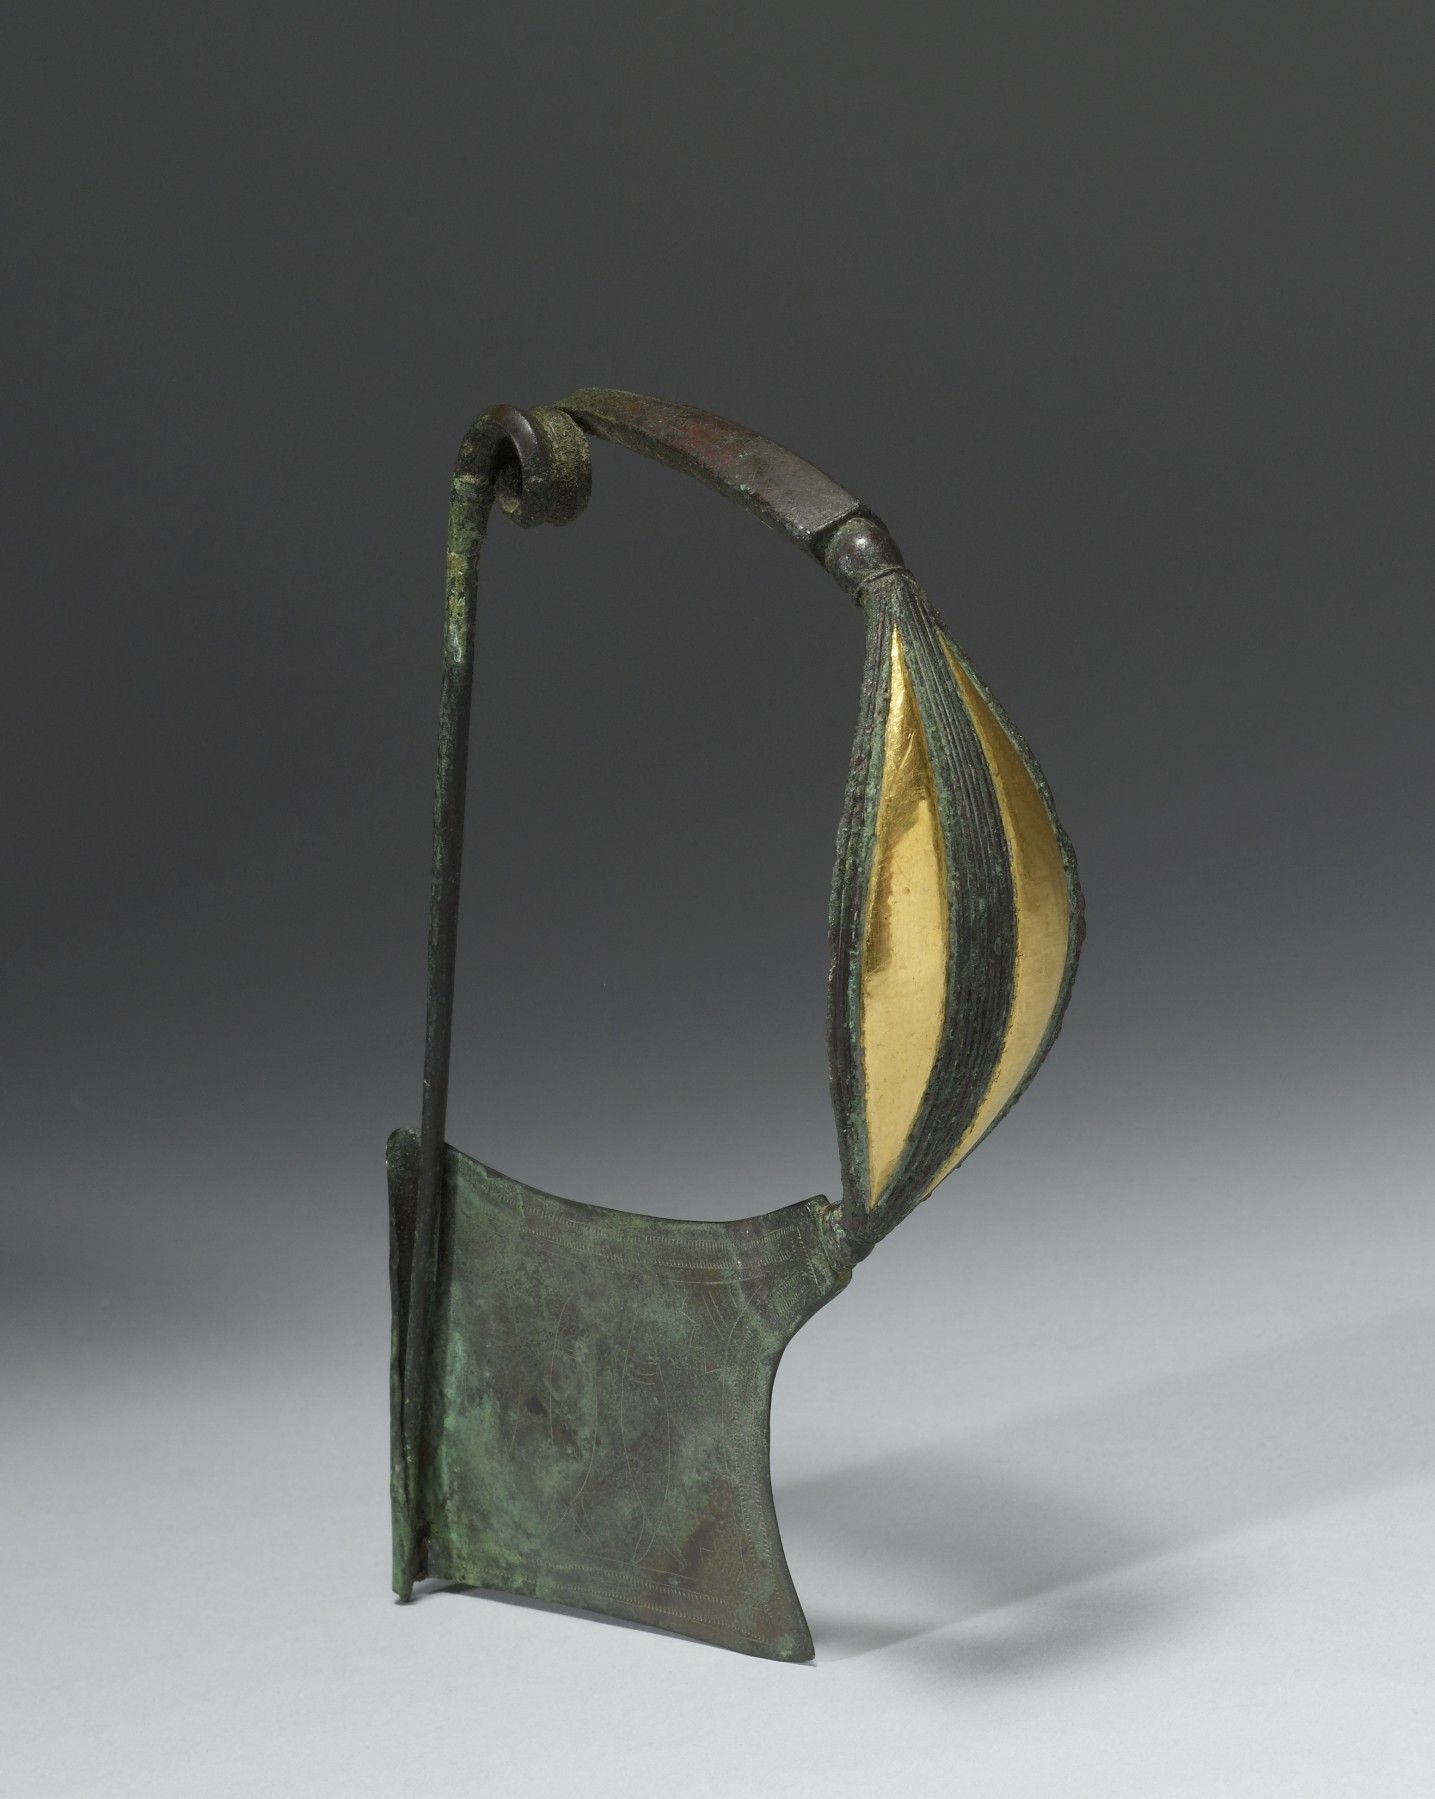 Plate Fibula - Greek, 750-700 BC (Archaic). bronze inlaid with gold